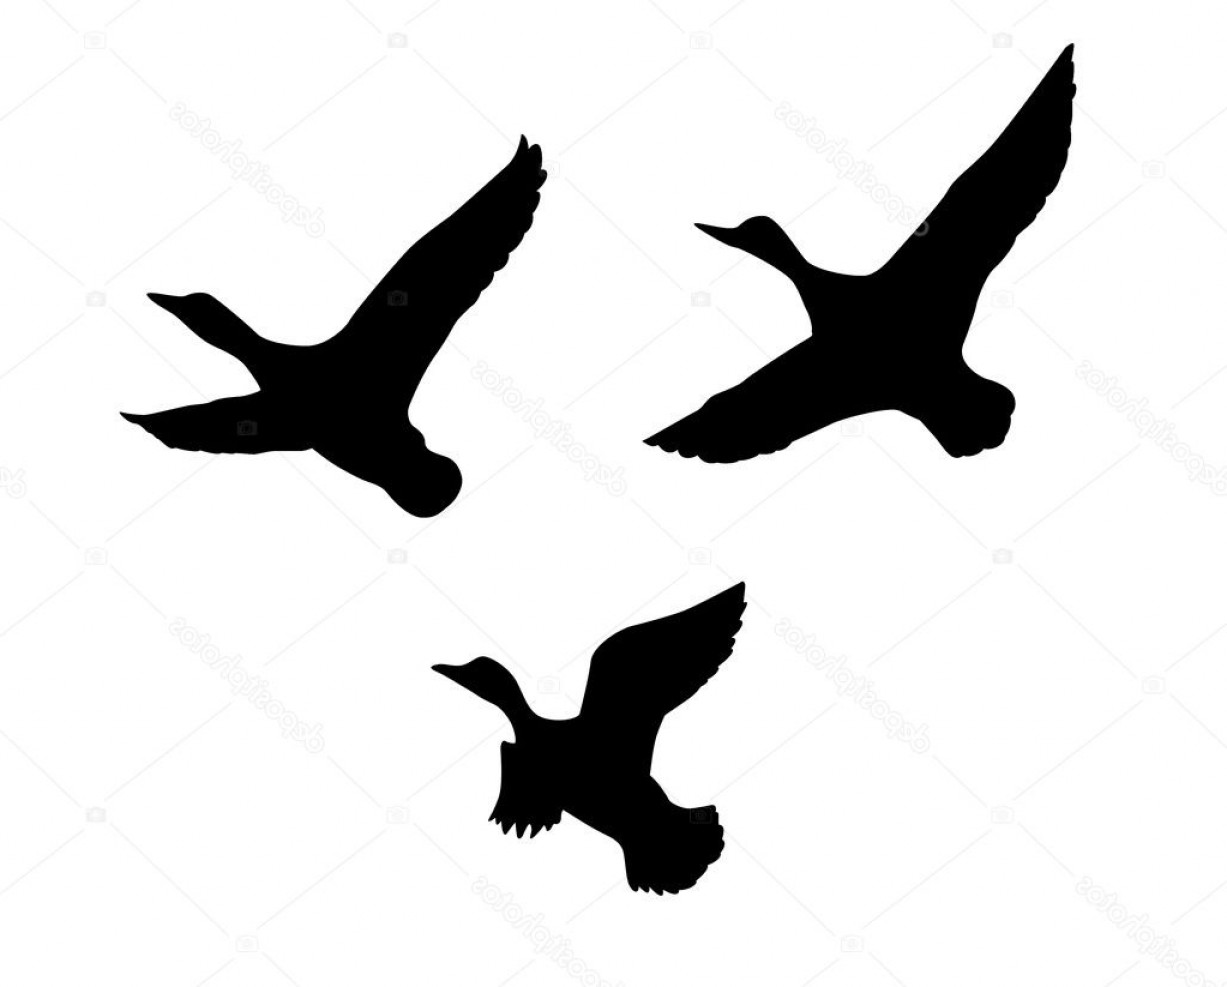 Flying Duck Outline Vector: Stock Illustration Vector Silhouette Flying Duck On